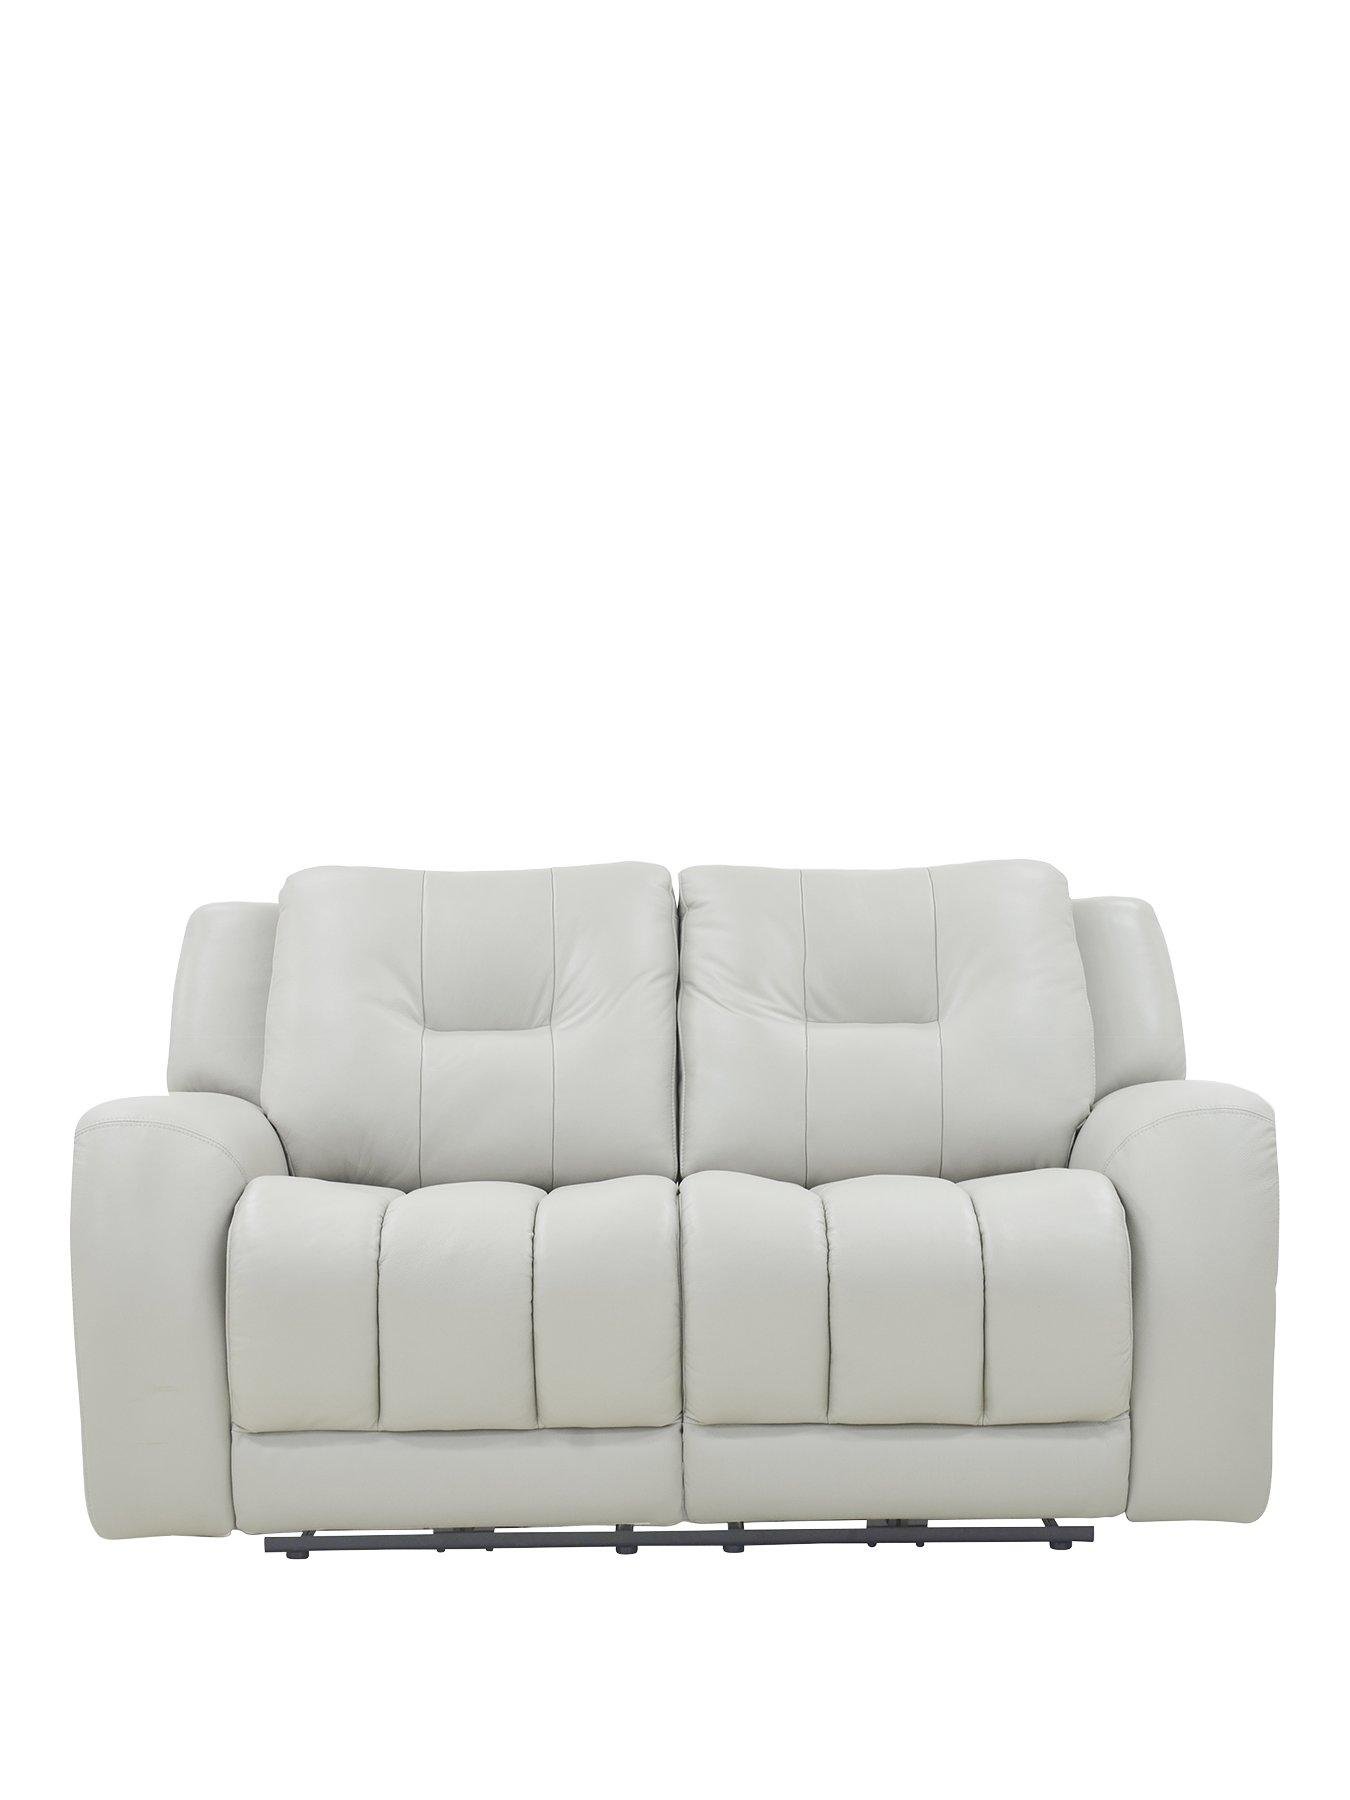 best rated power recliner sofas chesterfield leather sofa bed | home & garden www ...